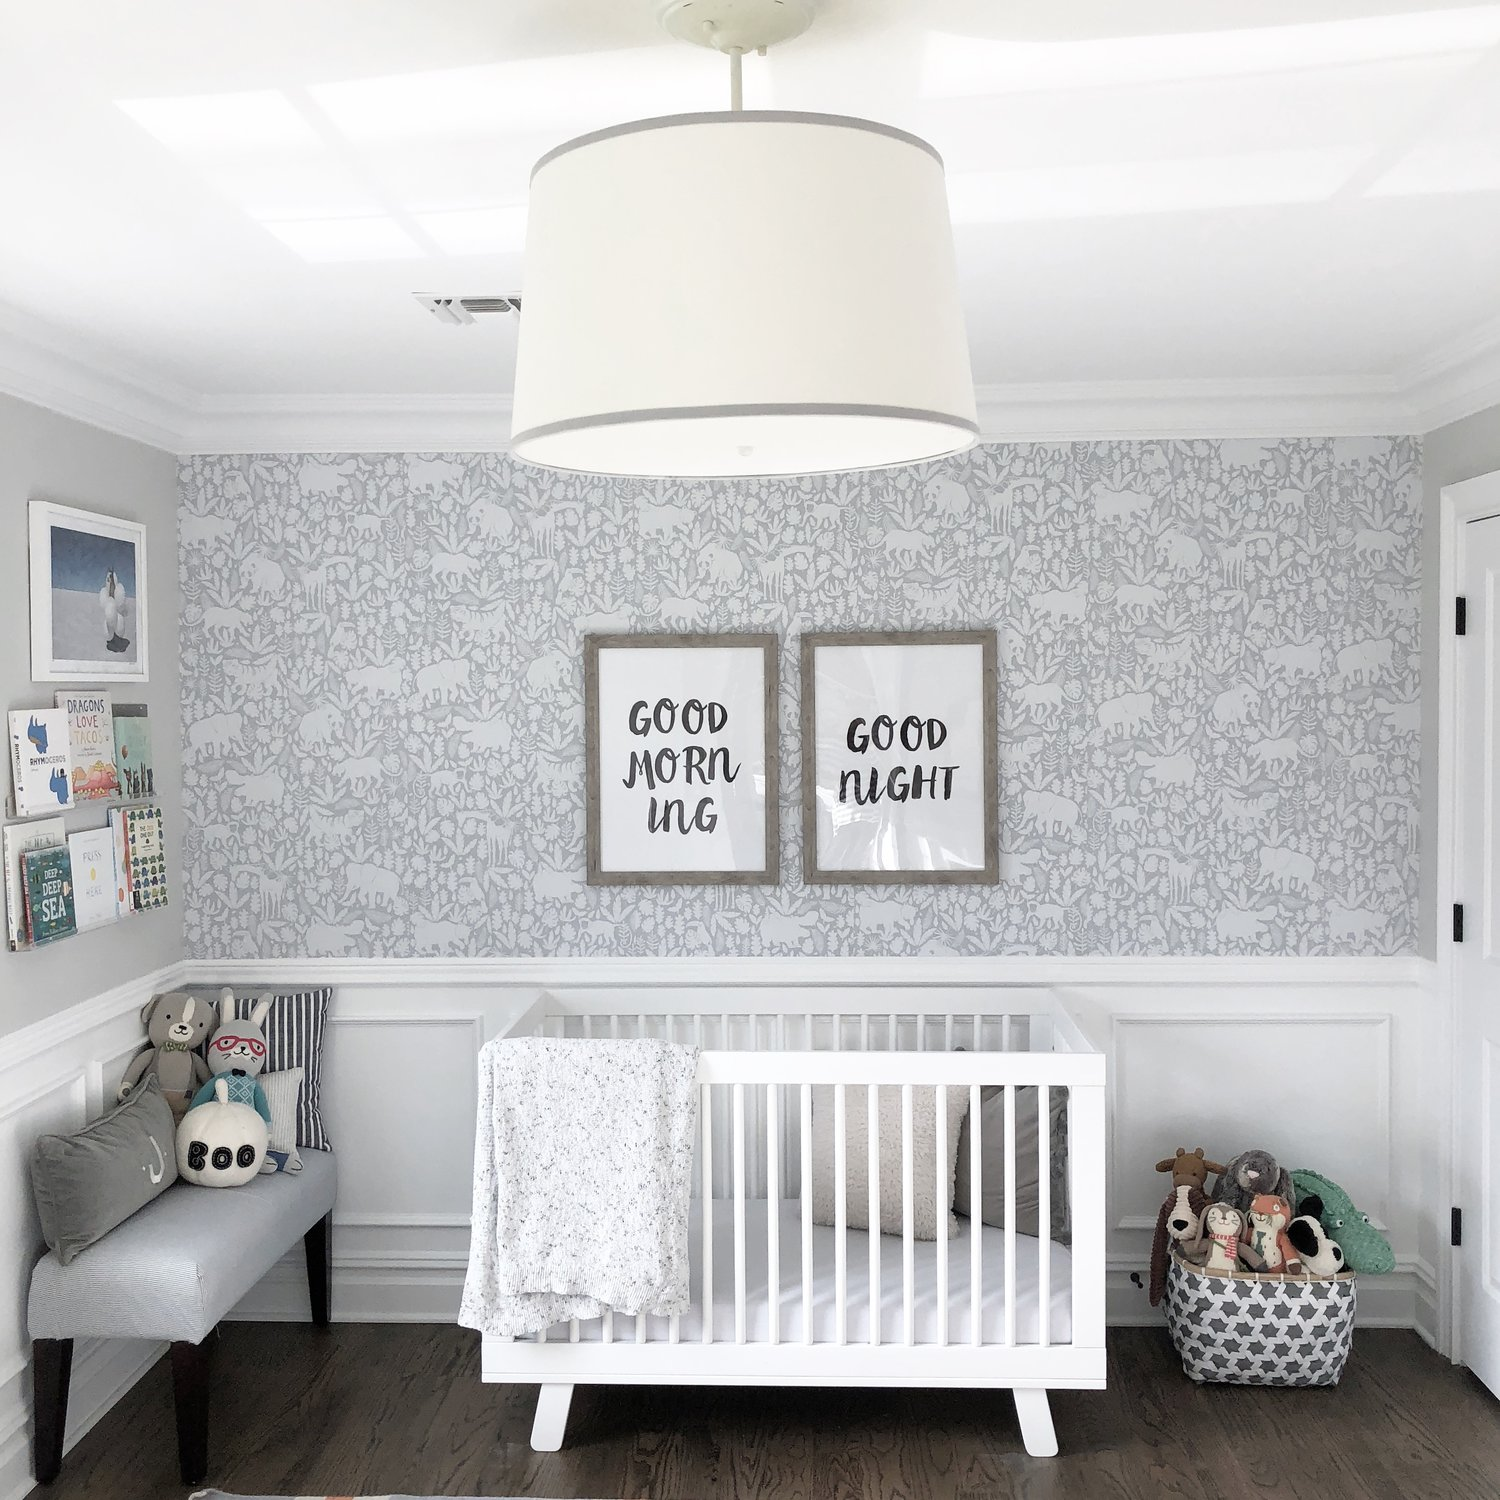 Removable Wallpaper Roundup: Baby/Kids Edition